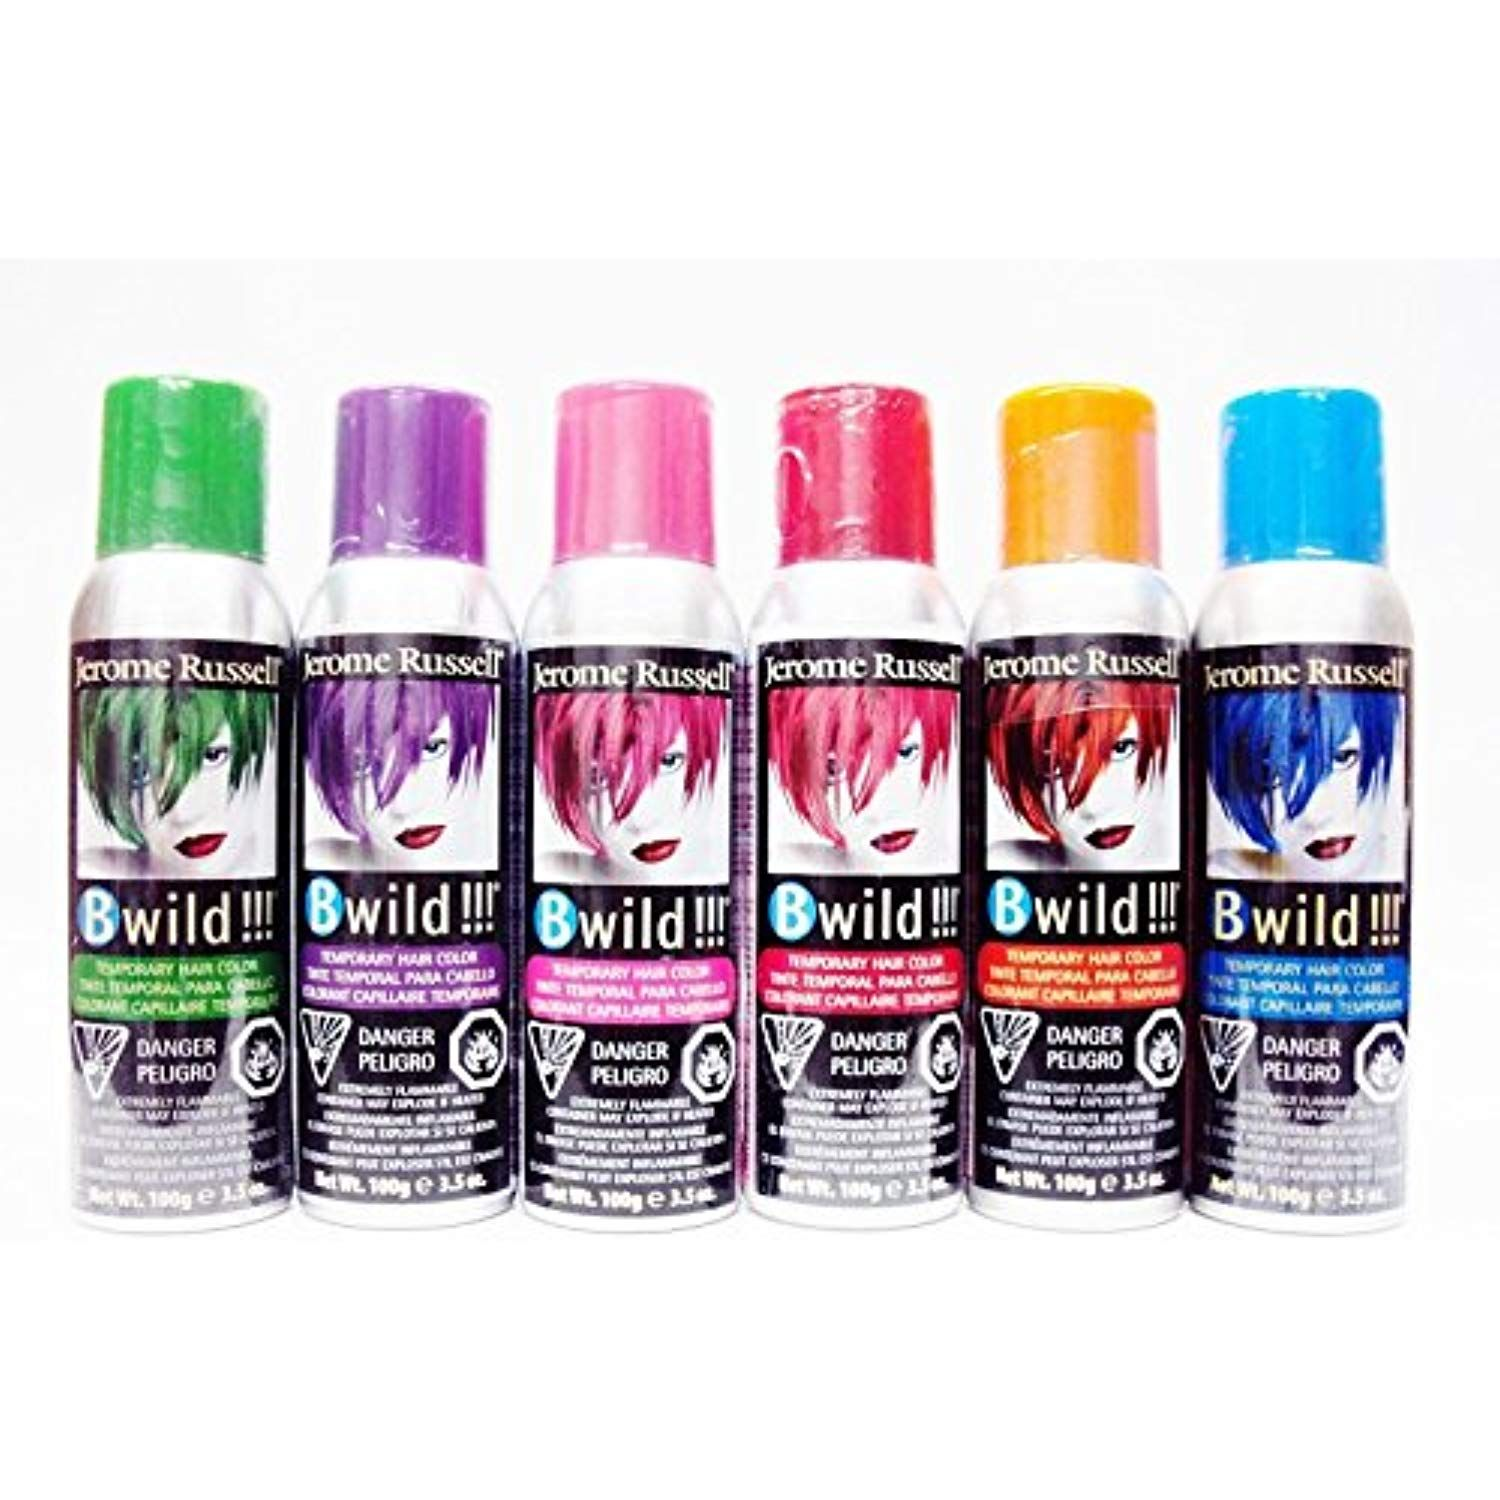 Jerome Russell B Wild Temp Ry Hair Color Spray 3 Oz 6 Pack